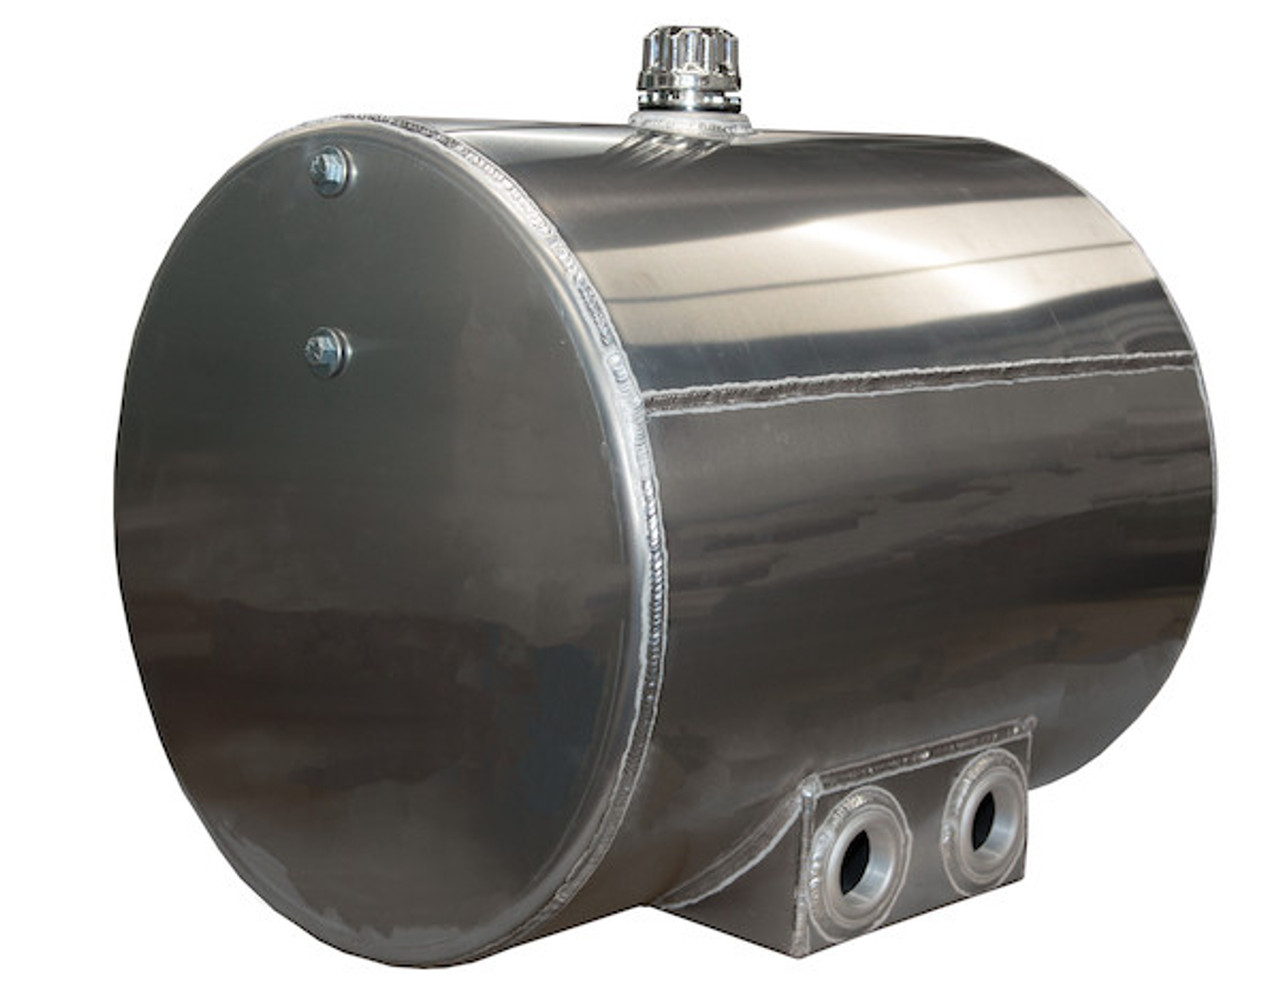 BUYERS SMC50AR 50 Gallon Side Mount Aluminum Reservoir with Rear Ports